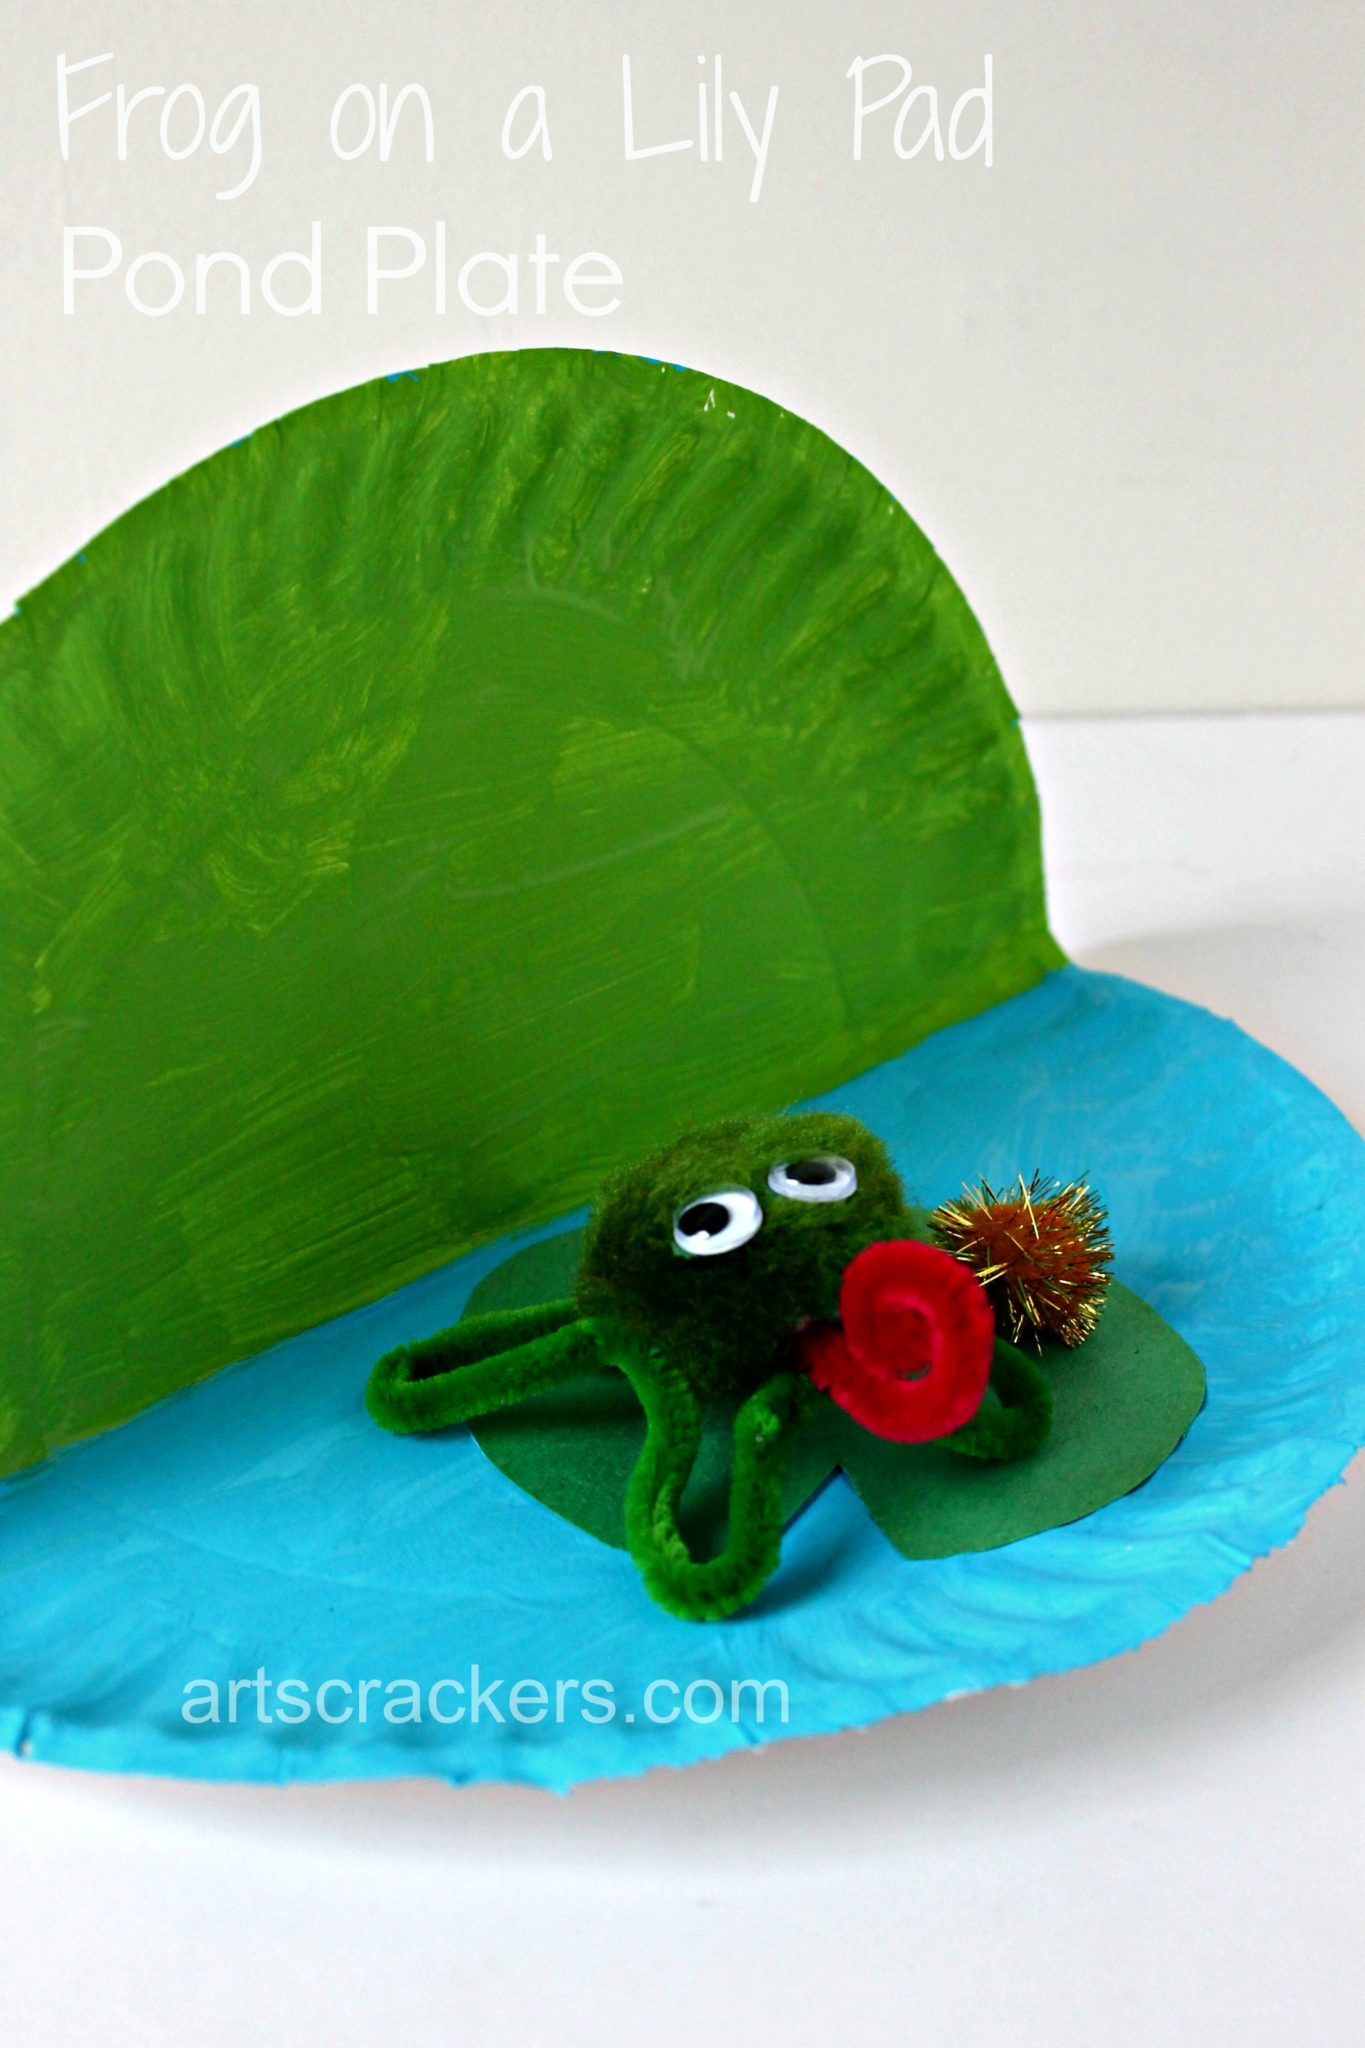 Diy Frog On A Lily Pad Pond Plate Craft